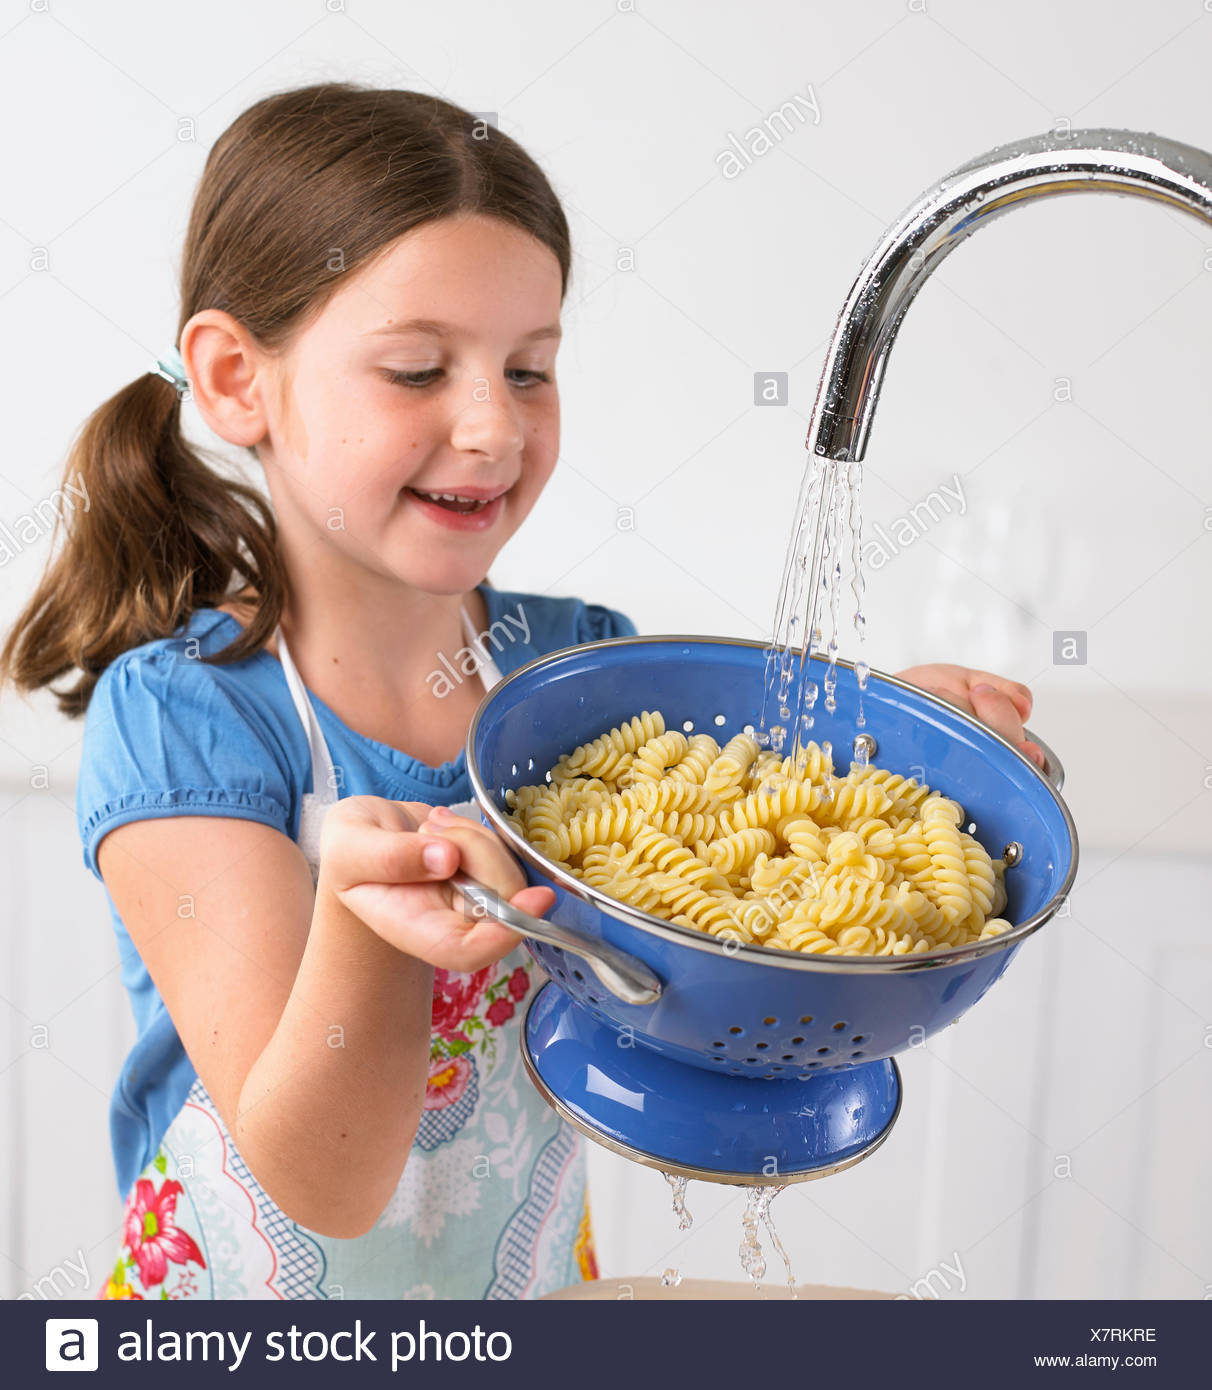 Young girl draining pasta - Stock Image